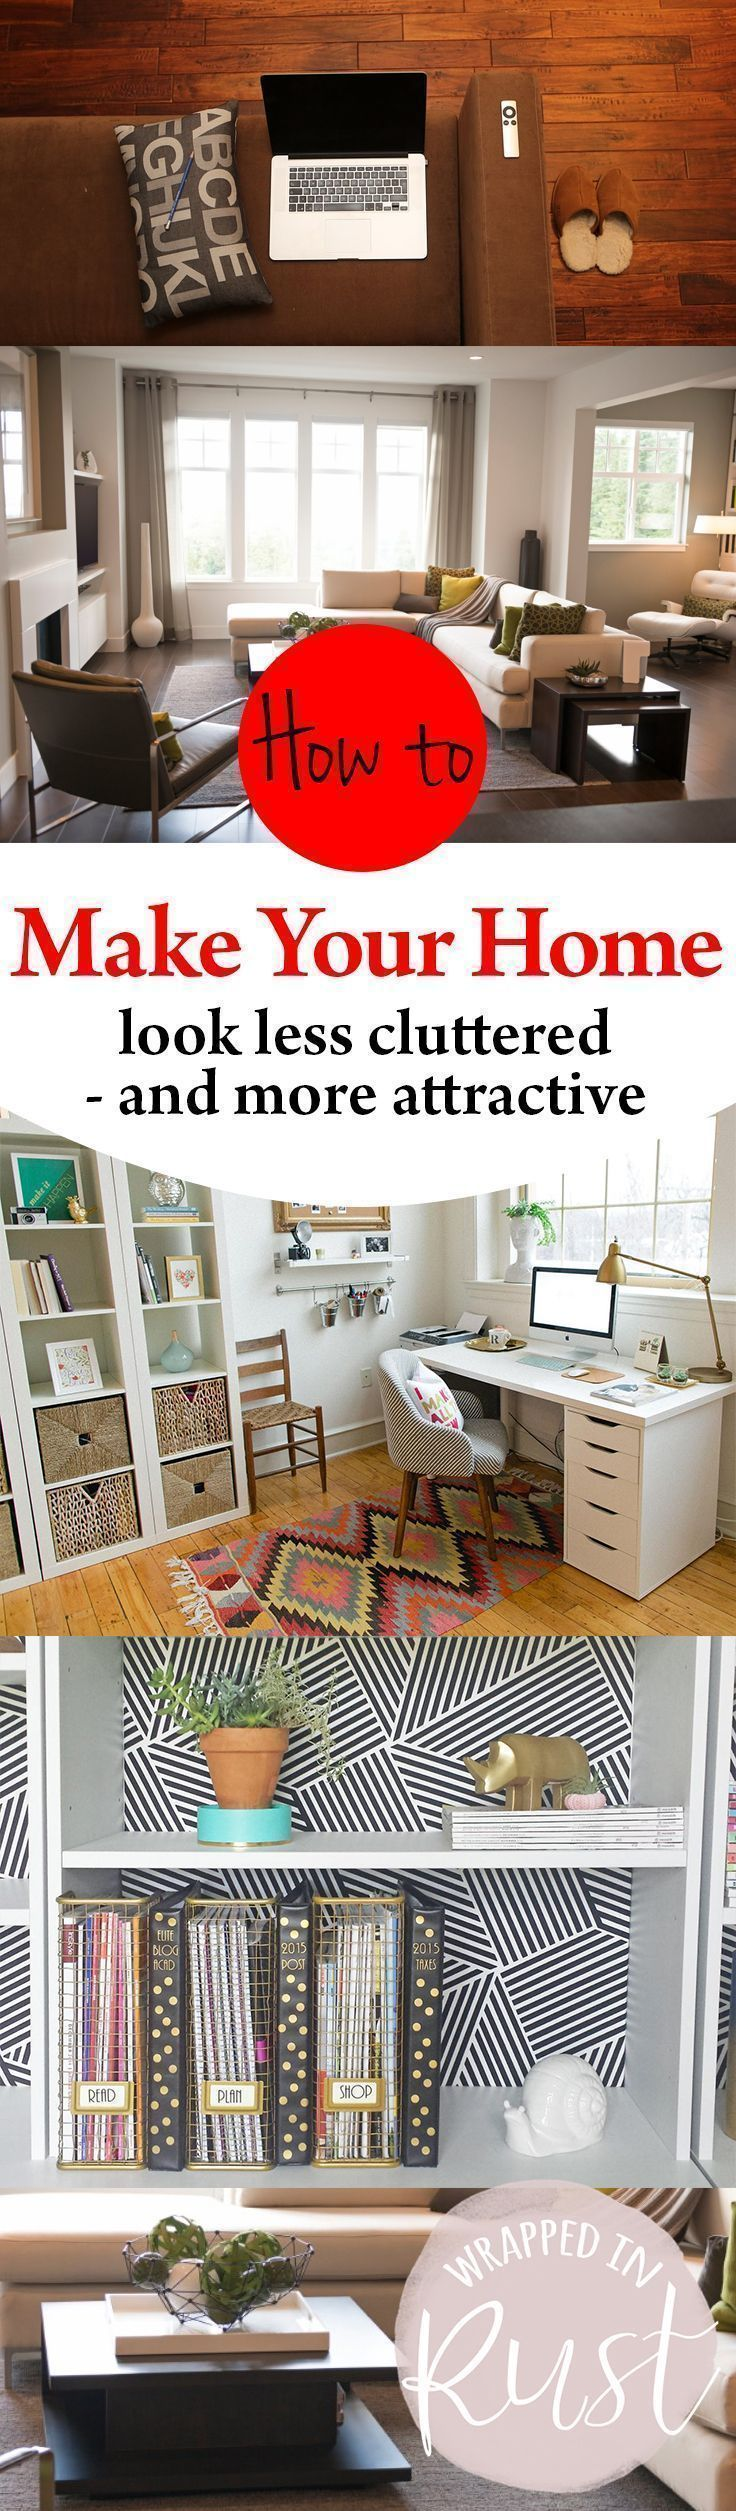 How to Make Your Home Look Less Cluttered — and More Attractive! How to Declutter Your Home, Fast Ways to Declutter Your Home, Home Organization, Organization Tips and Tricks, Fast Ways to Declutter Your Home, Home Declutter Tips and Tricks..Call today or stop by for a tour of our facility! Indoor Units Available! Ideal for Outdoor gear, Furniture, Antiques, Collectibles, etc. 505-275-2825 #tipstodeclutteryourhome